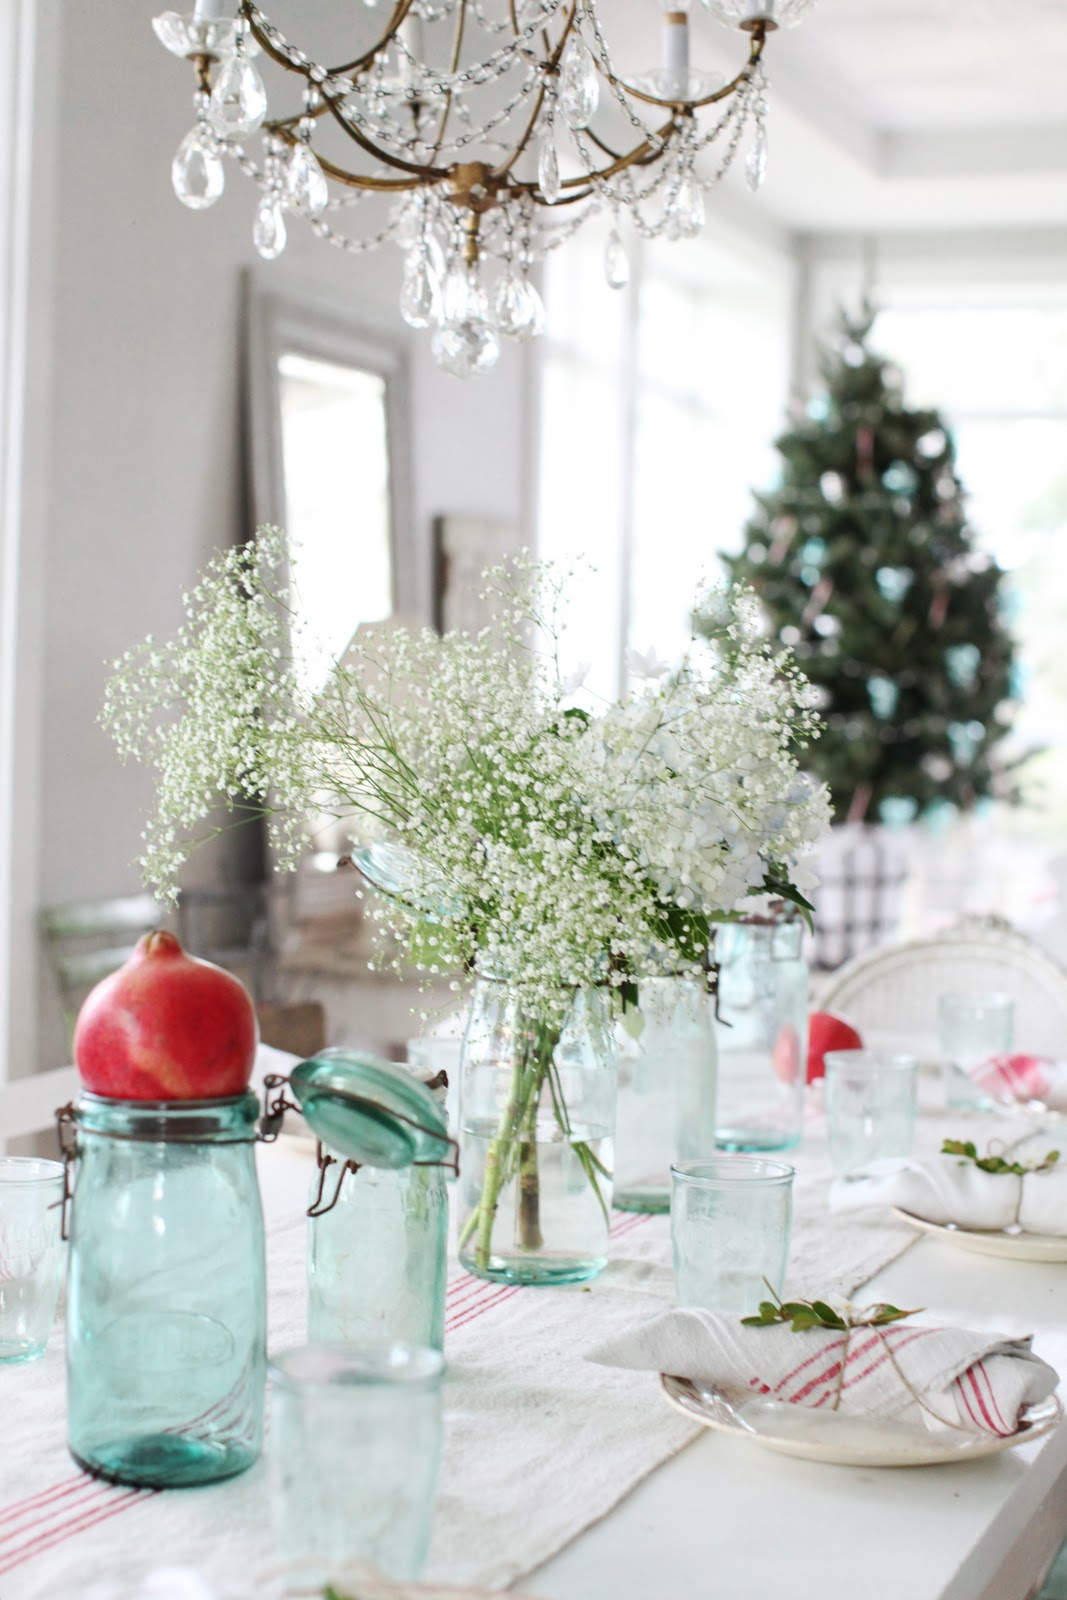 Dreamy whites a simple christmas table setting - Modern christmas table settings ideas ...